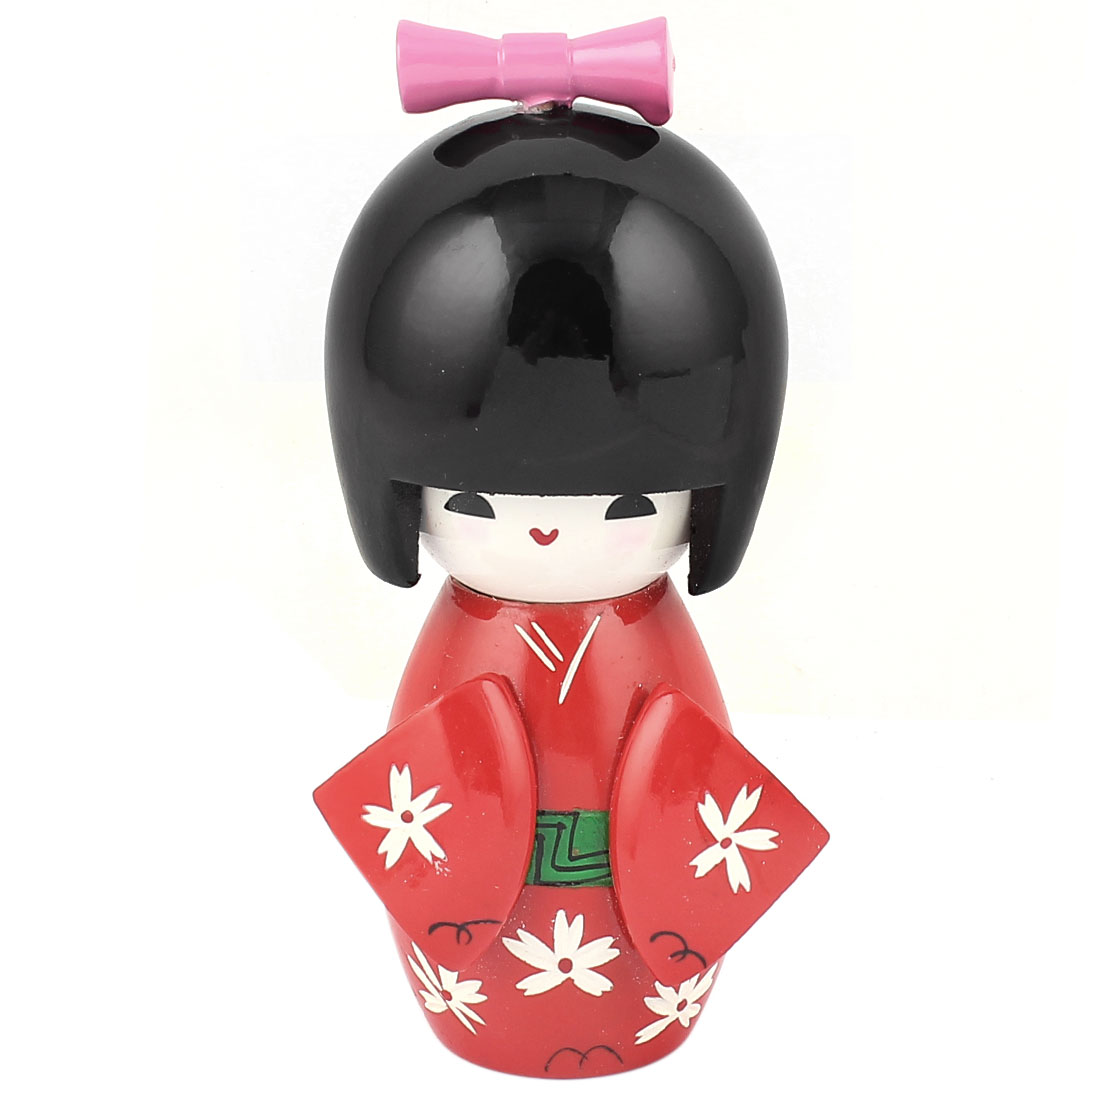 Manual Flower Decor Kimono Wooden Craft Gift Japanese Kokeshi Doll Red